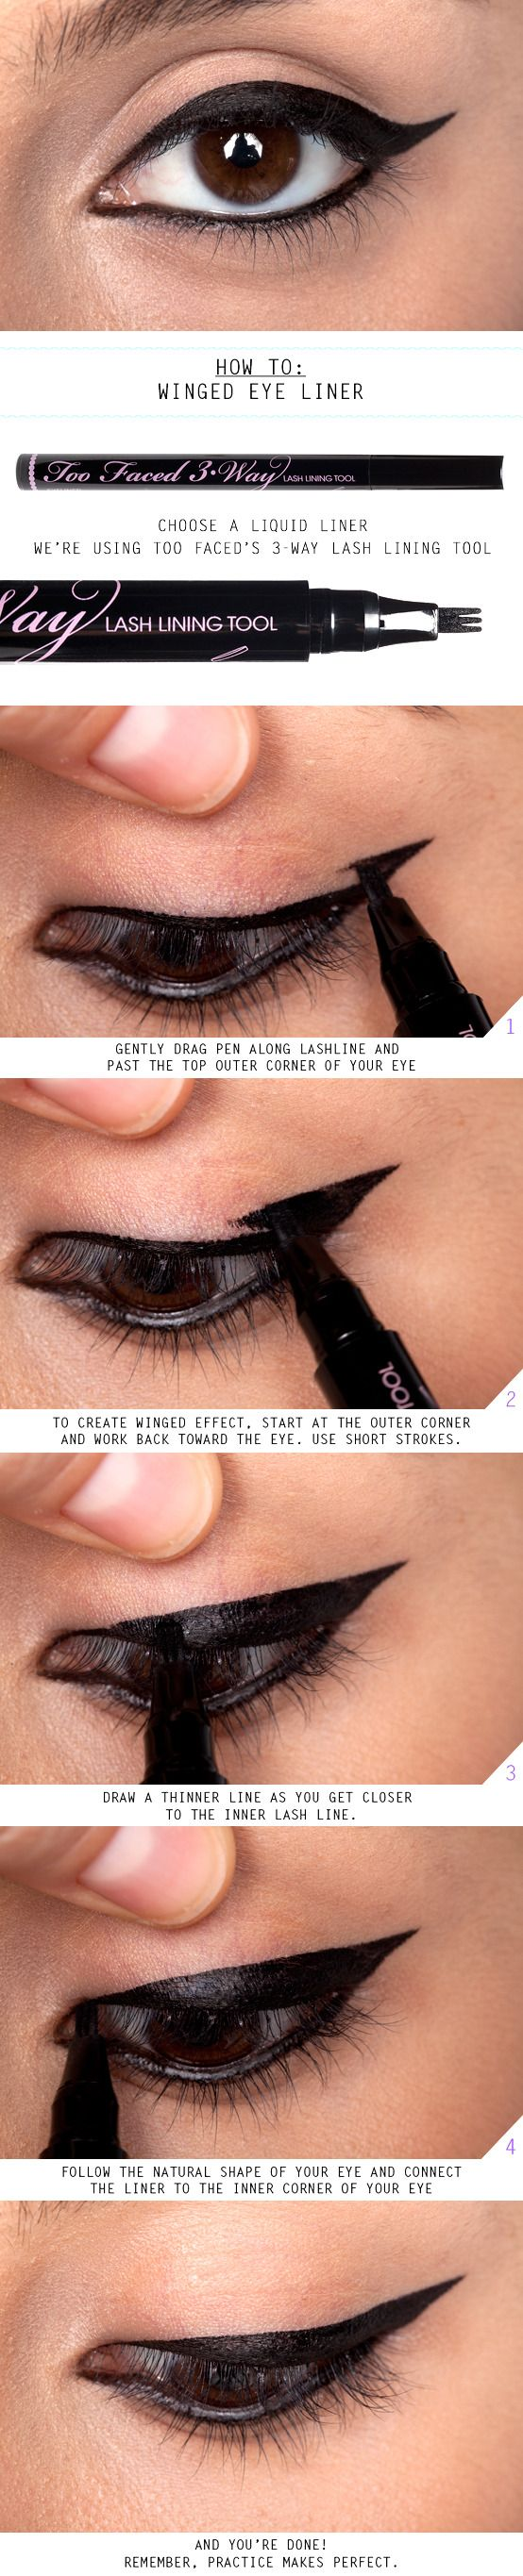 How To: Winged Eye Liner with liquid pen